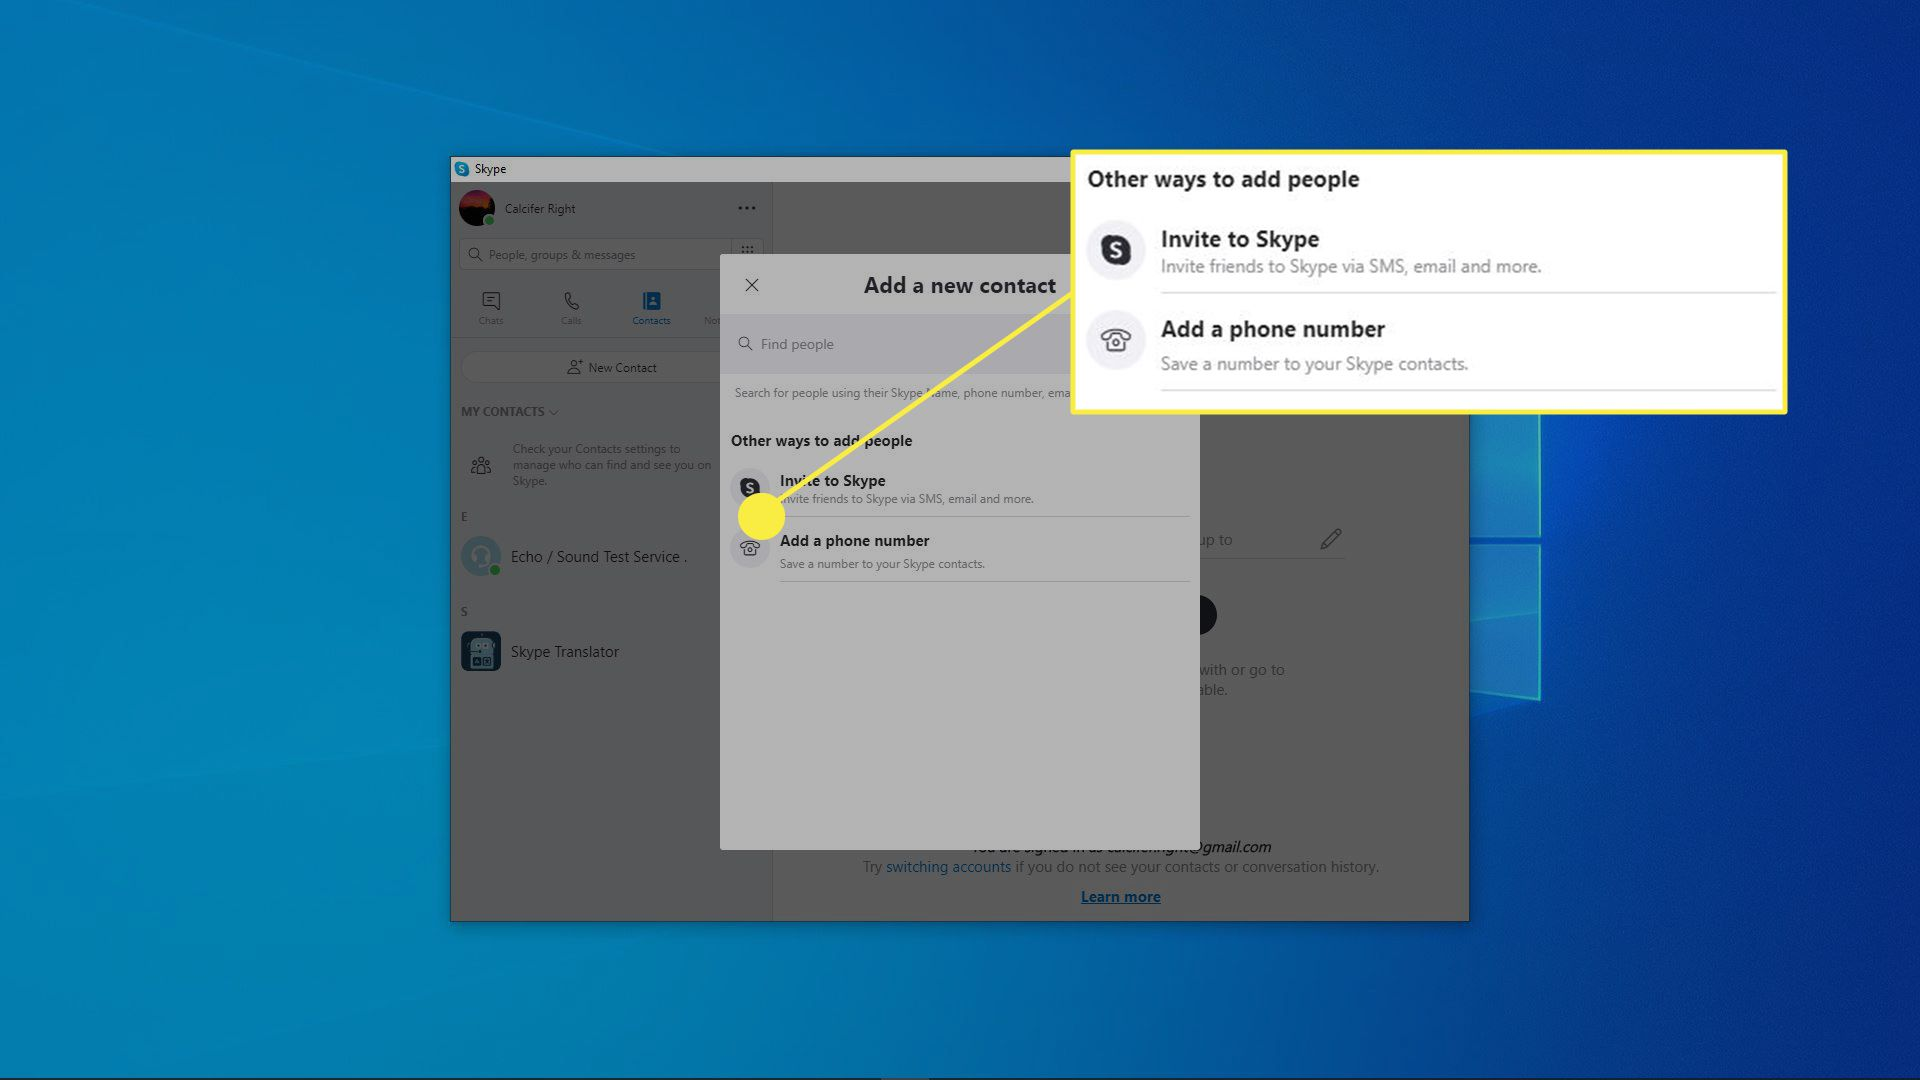 The add a new contact menu in Skype.